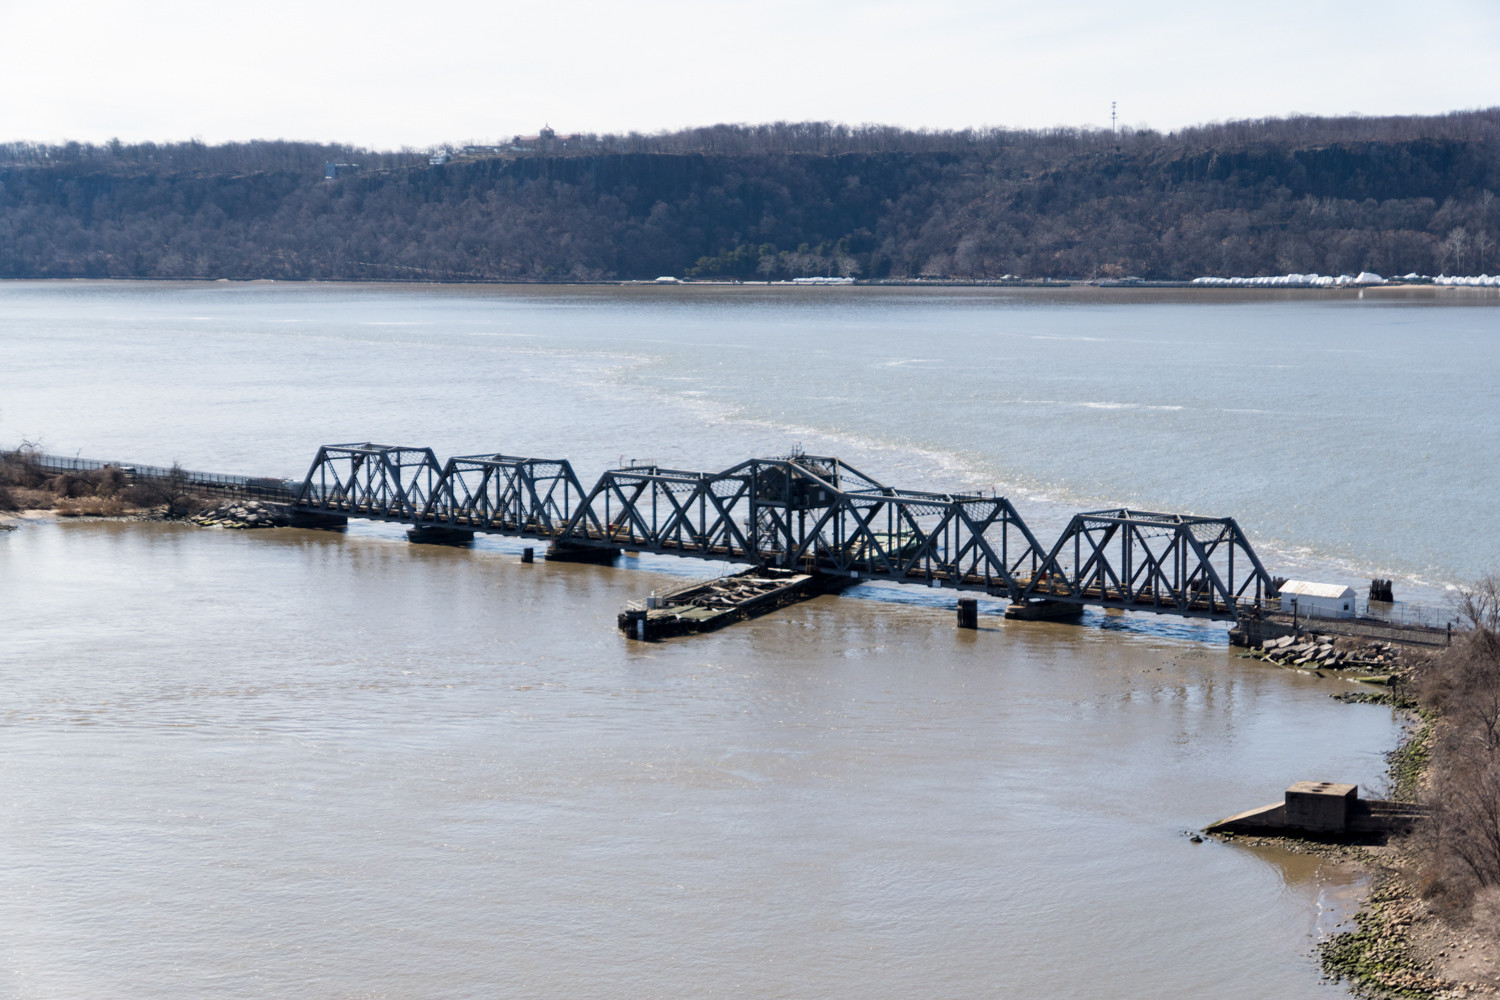 The Spuyten Duyvil Bridge suffered damage to its base from Hurricane Sandy in 2012. Amtrak trains passing through Spuyten Duyvil will take a different route this summer, with diversions planned to Grand Central Terminal, as Amtrak works on rehabilitating its infrastructure, including repairing the bridge.